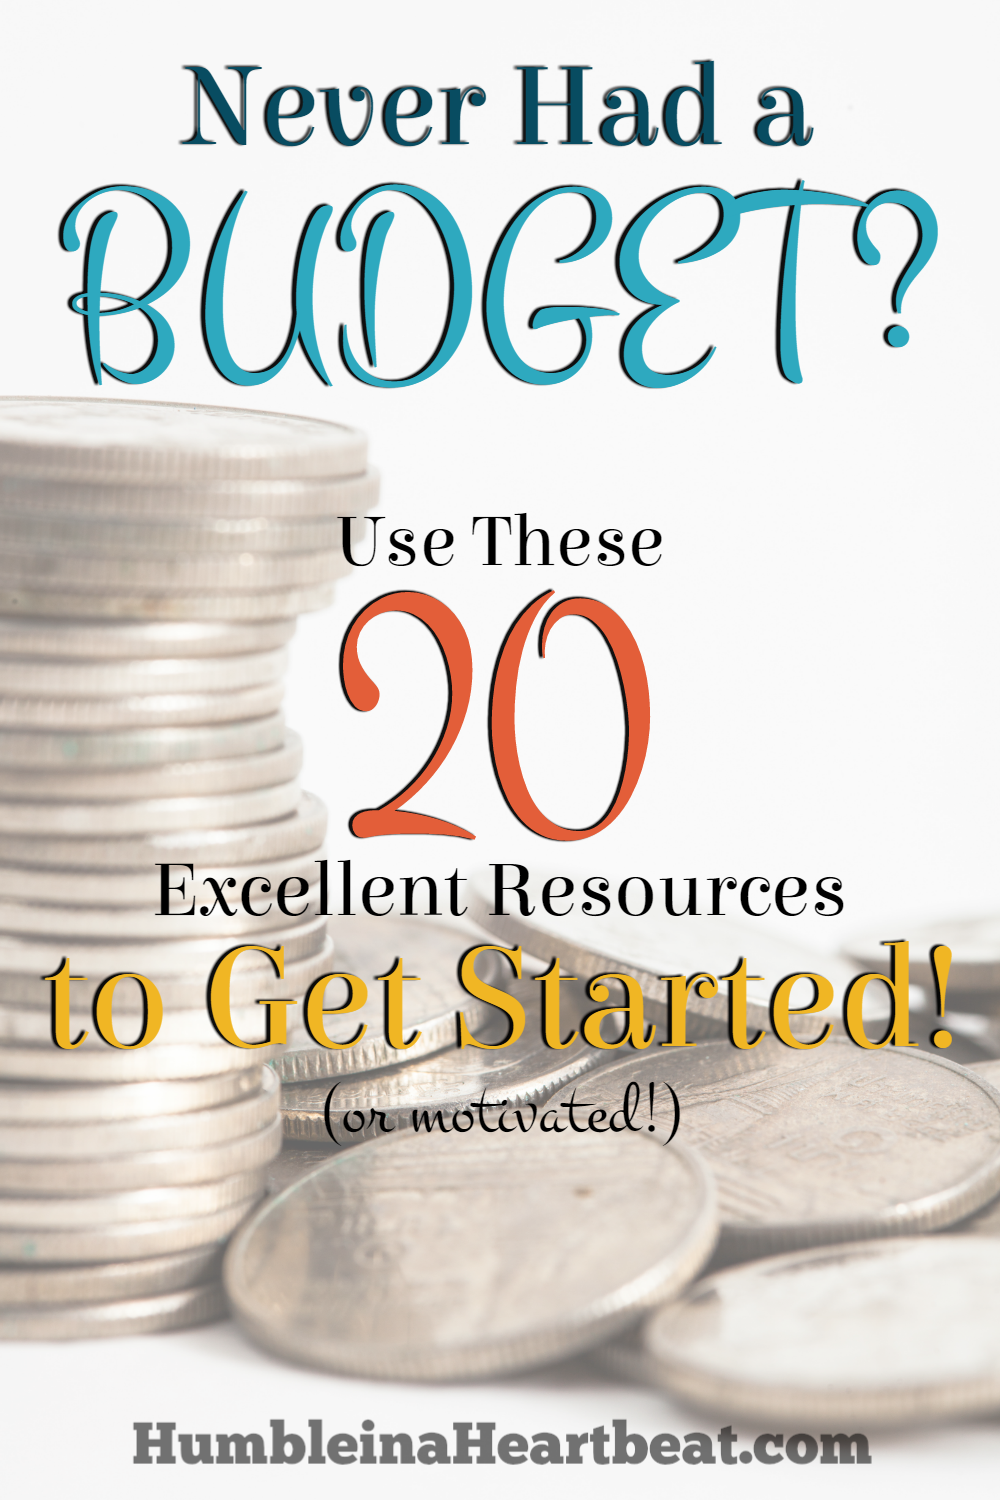 Budgeting can seem challenging for anyone who has never done it. So here are 20 excellent resources to help you get a budget started now and reach your goals faster!